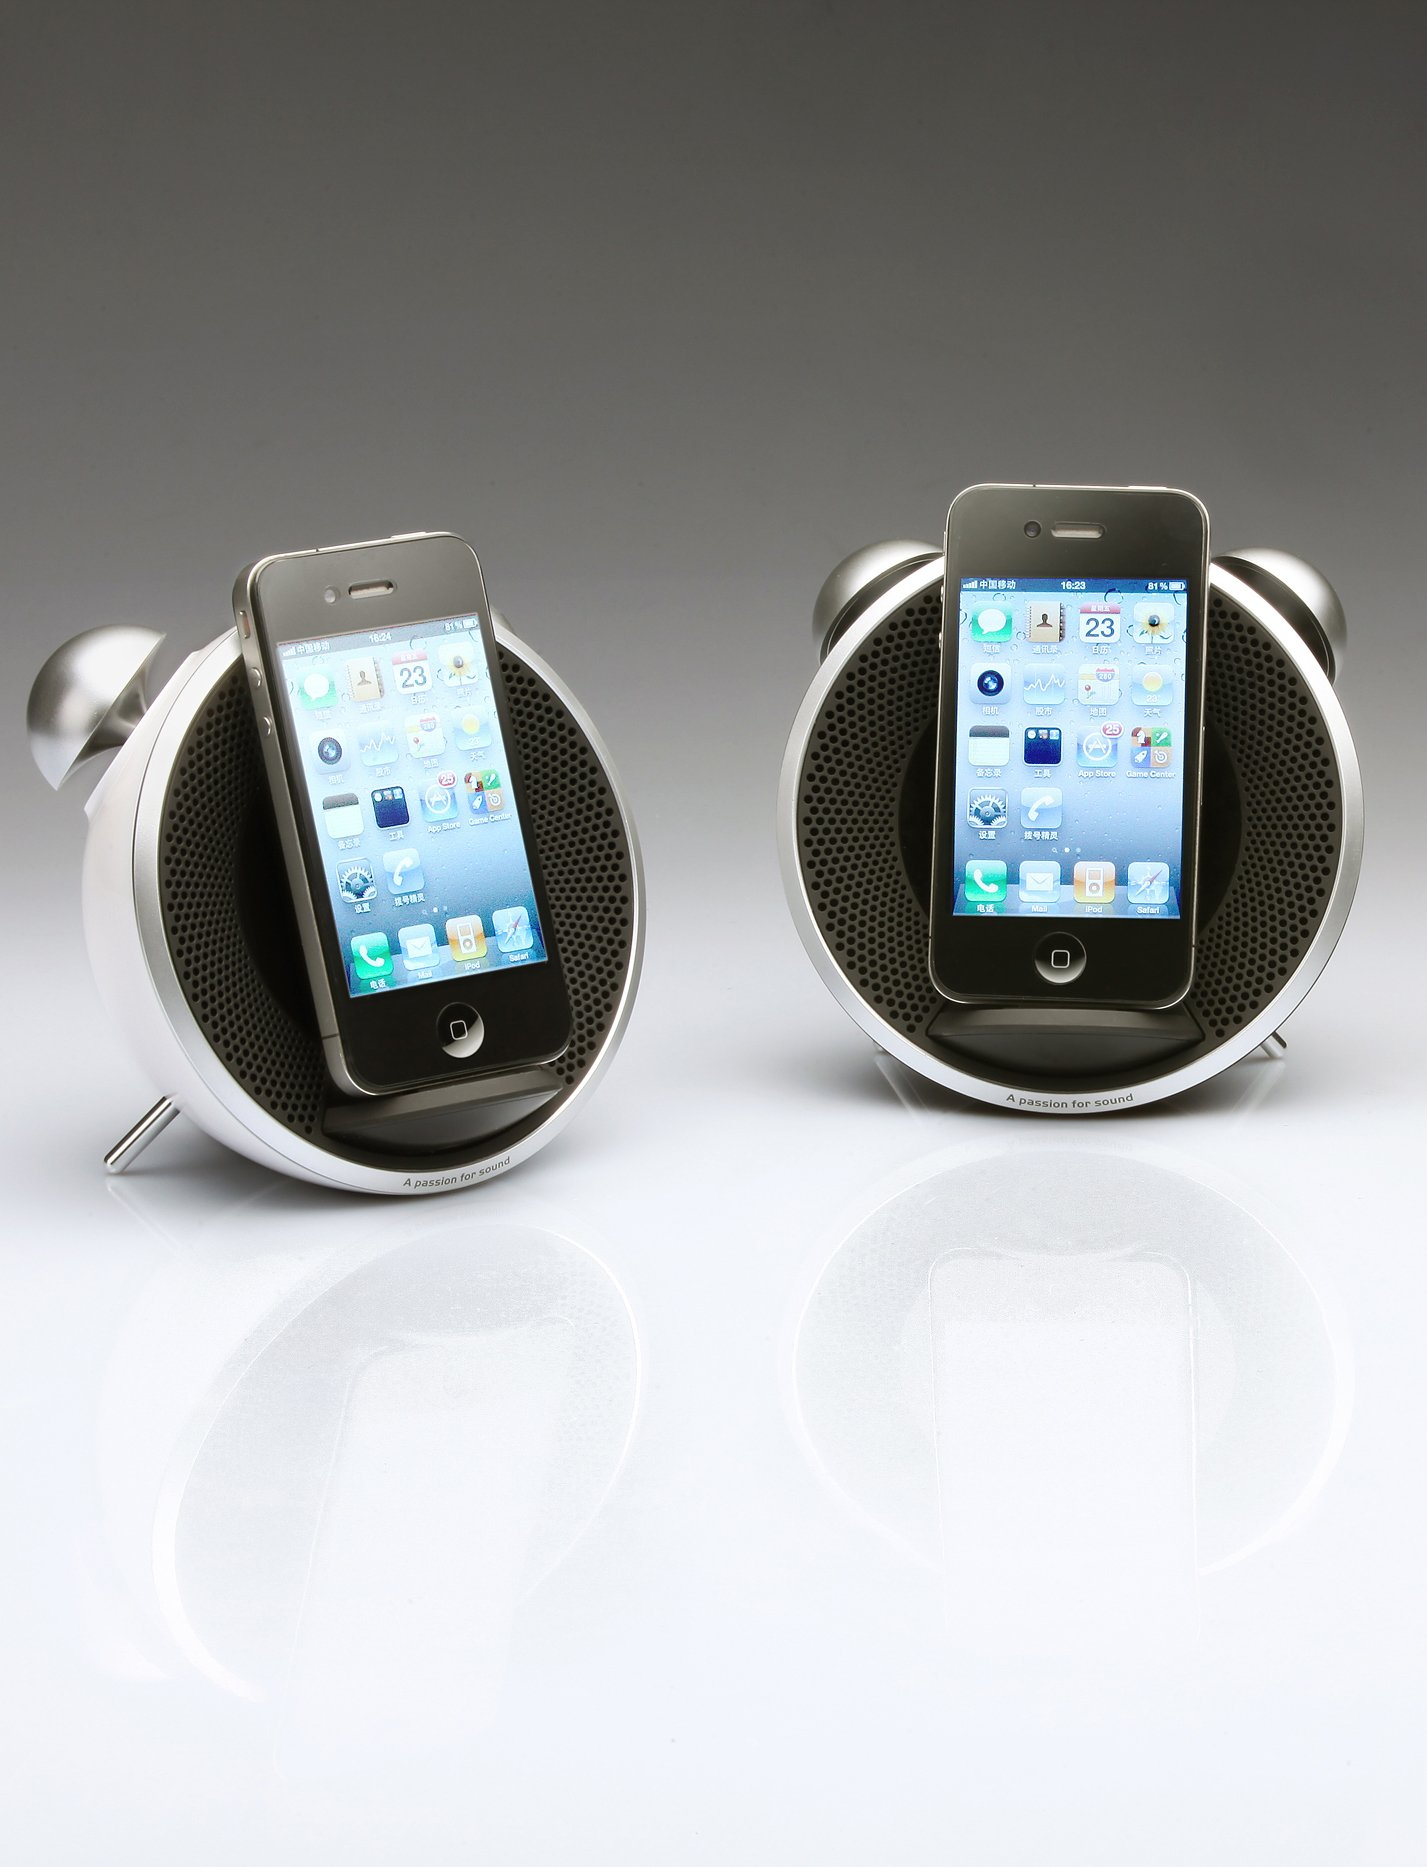 Edifier Retro-Styled iTick Tock iPod/iPhone Docking System - Black